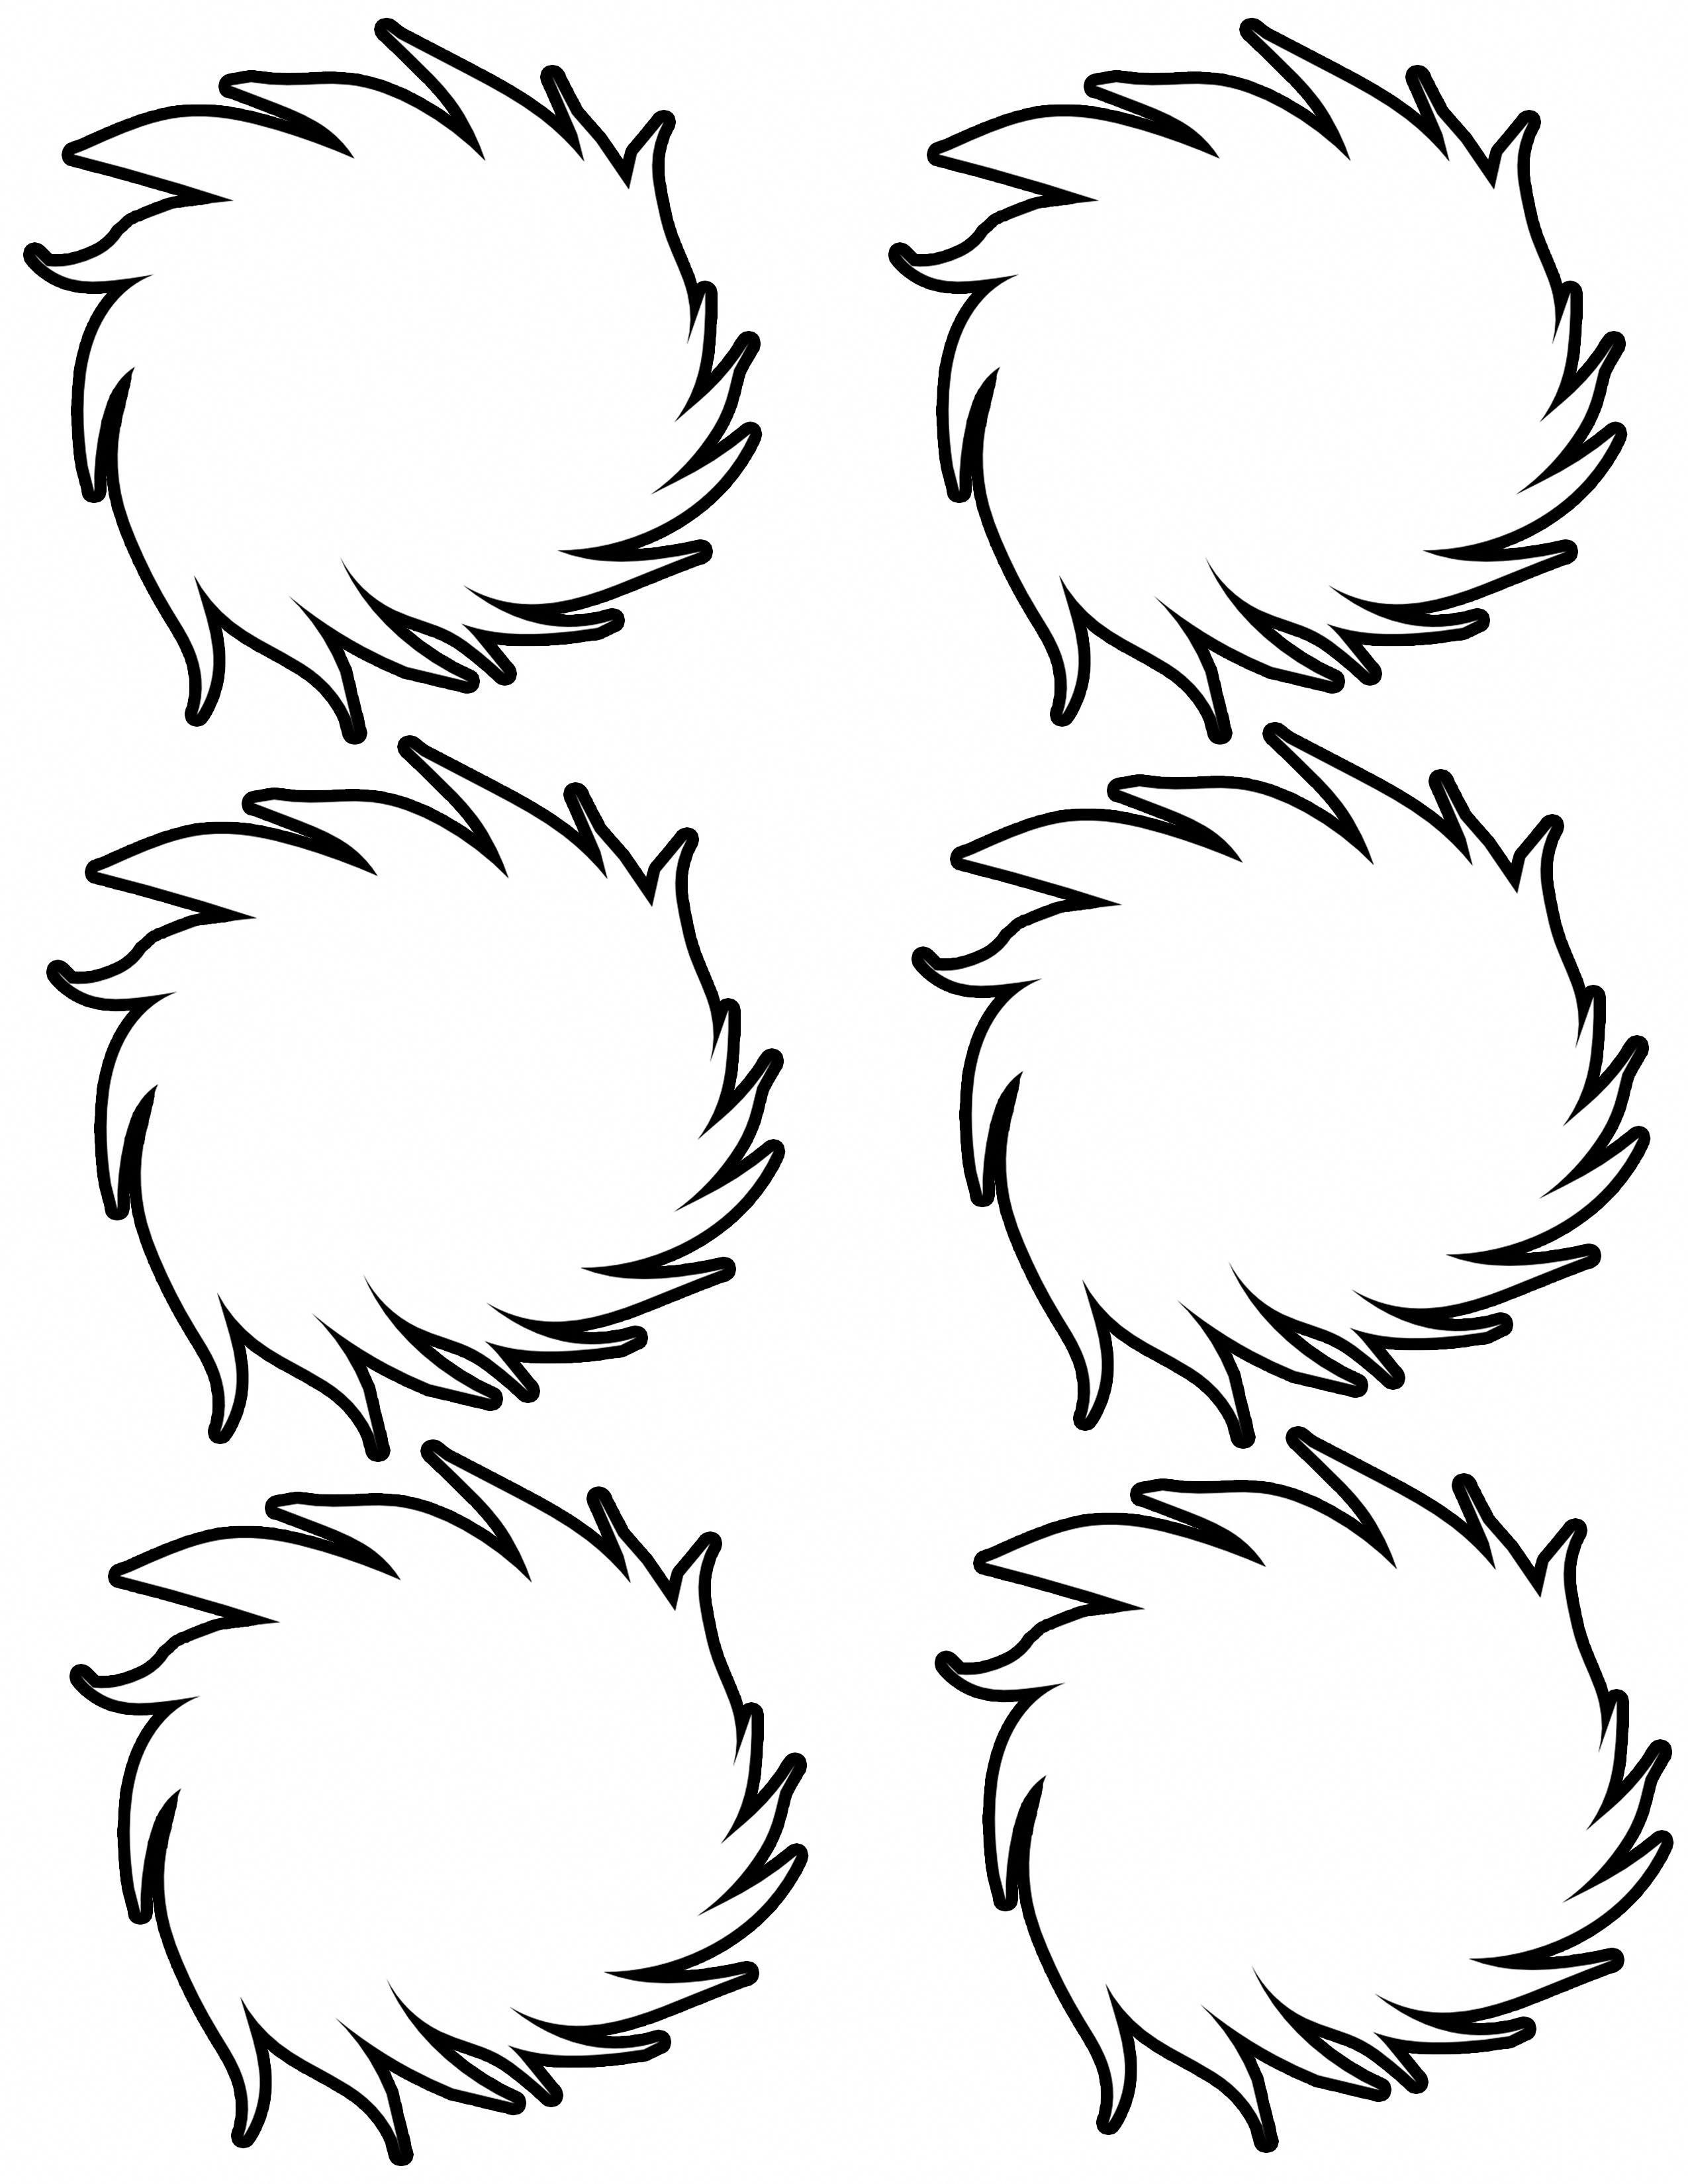 pictures of the lorax to color o en lorax colouring pages with images coloring pages of pictures the to lorax color